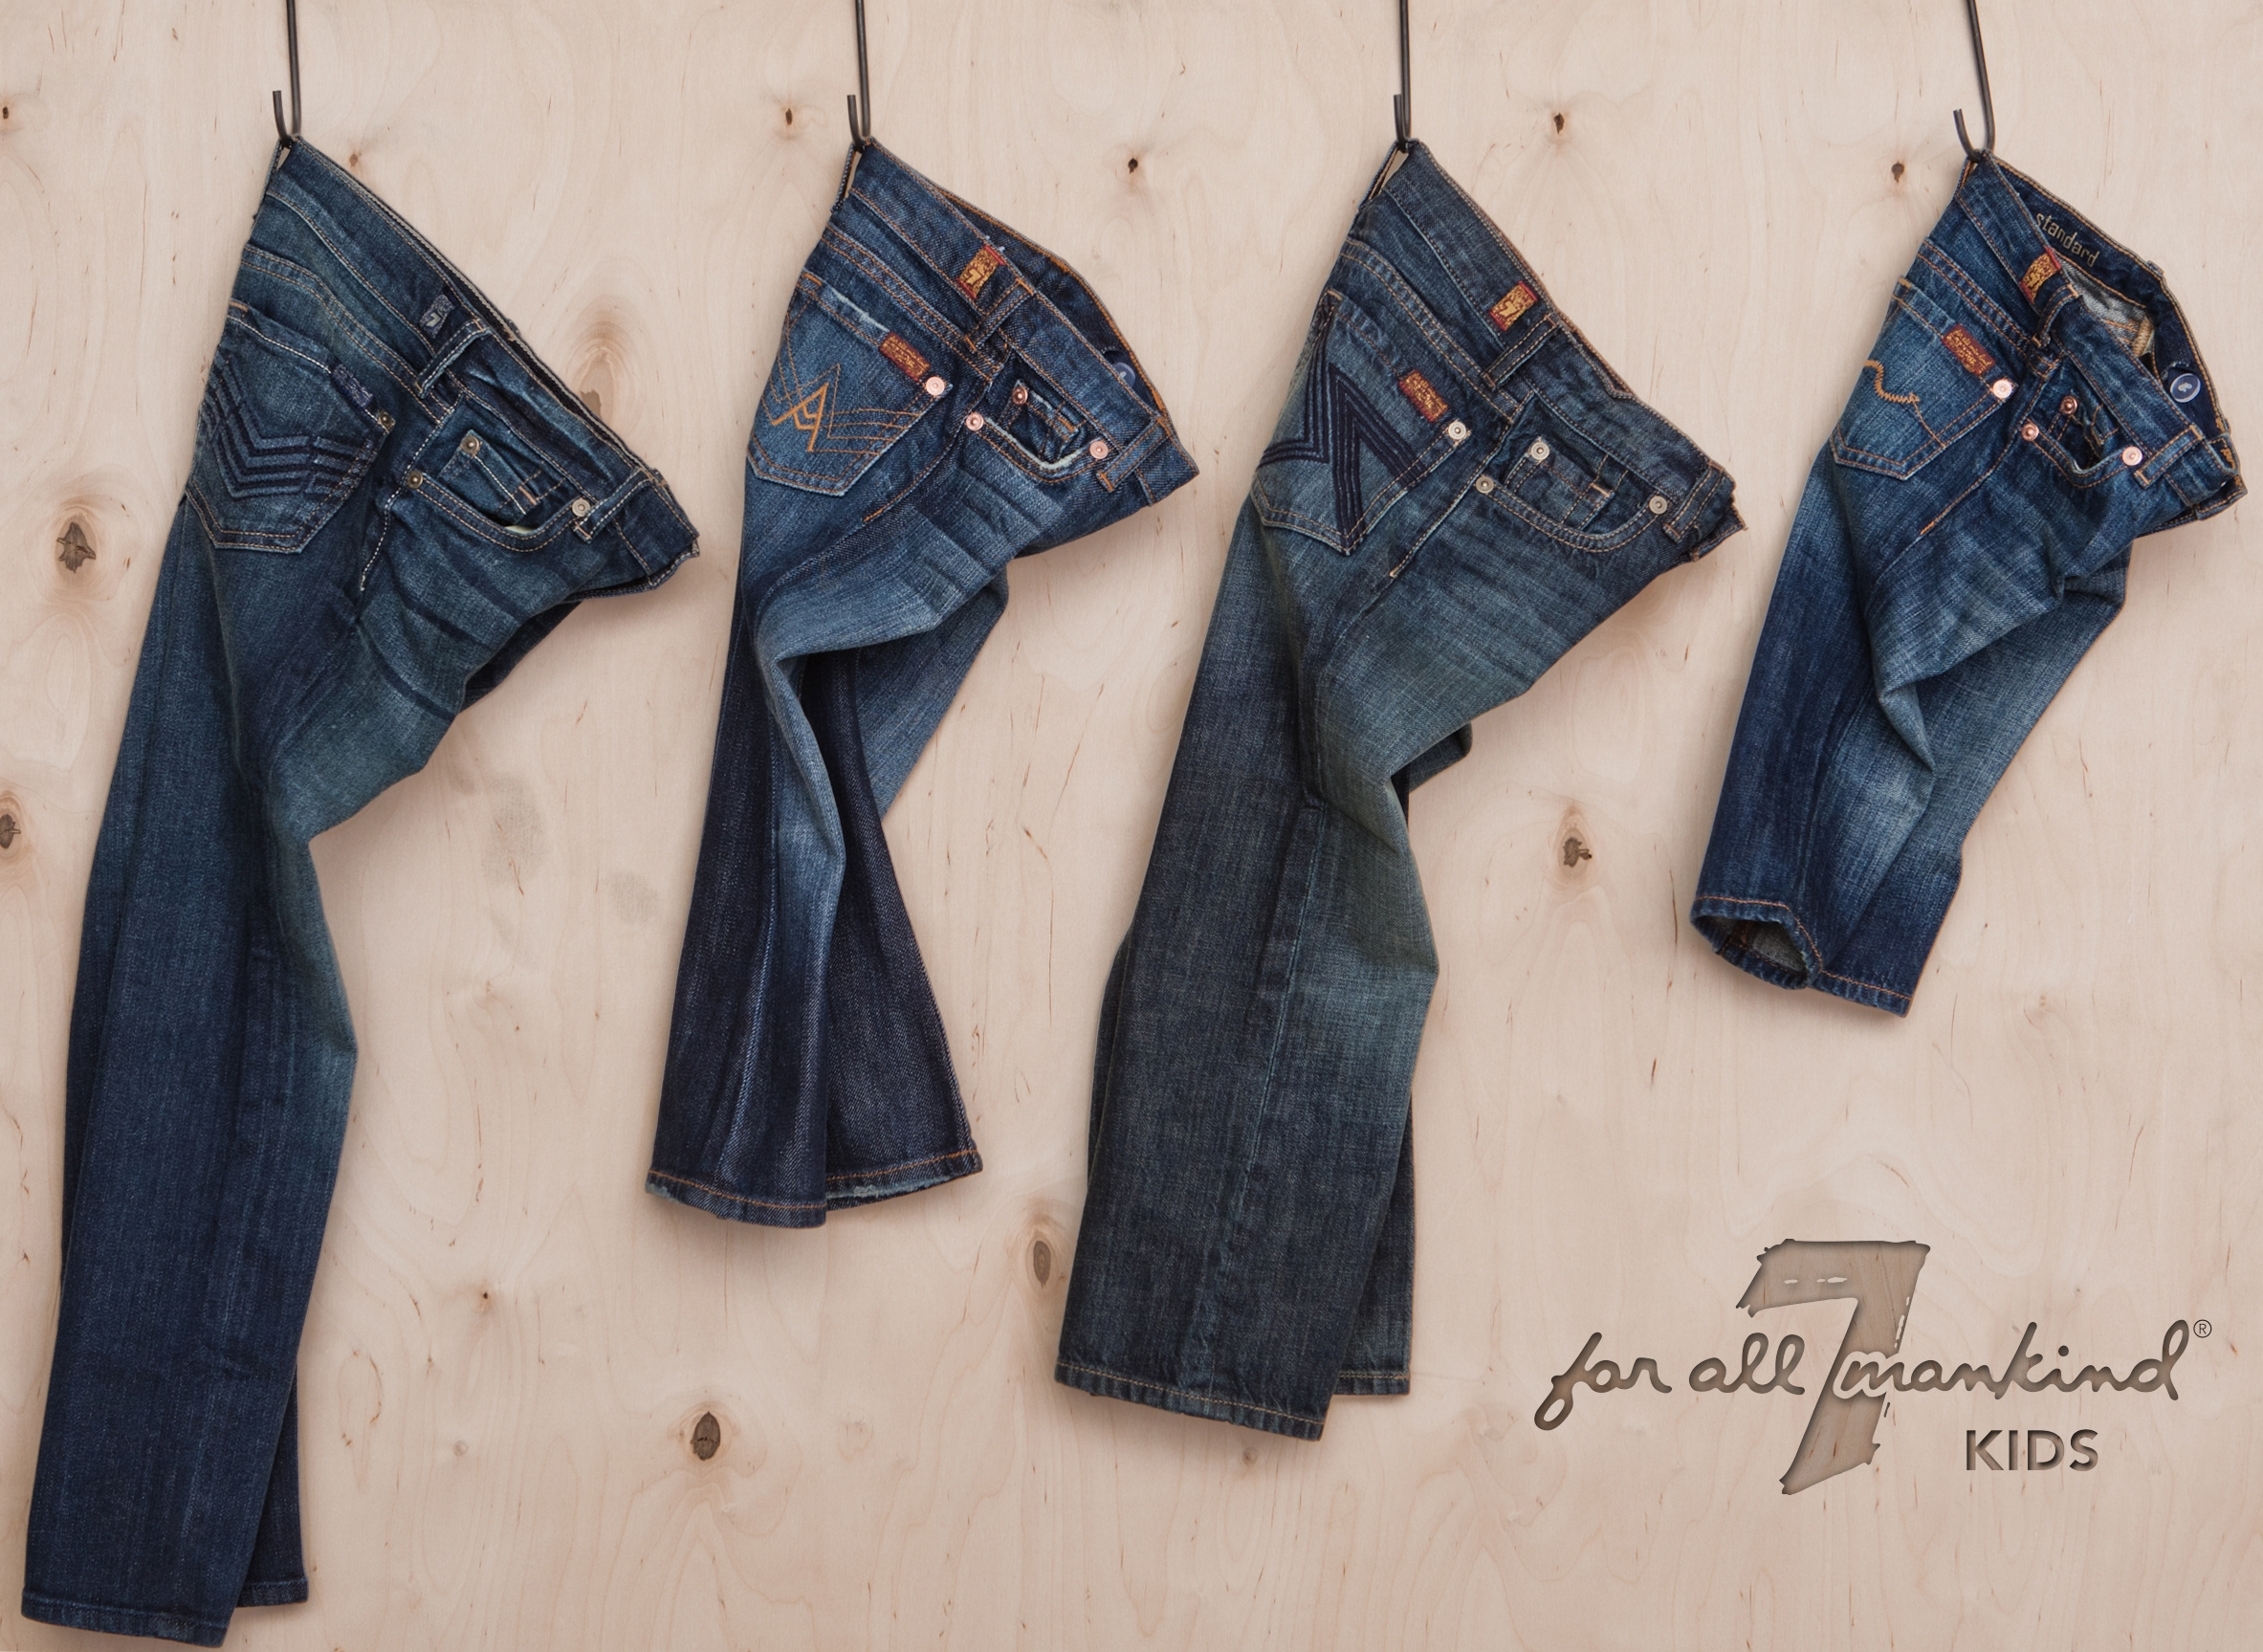 Top 10 Most Favorite Jeans Brands | Top Lists of Everything